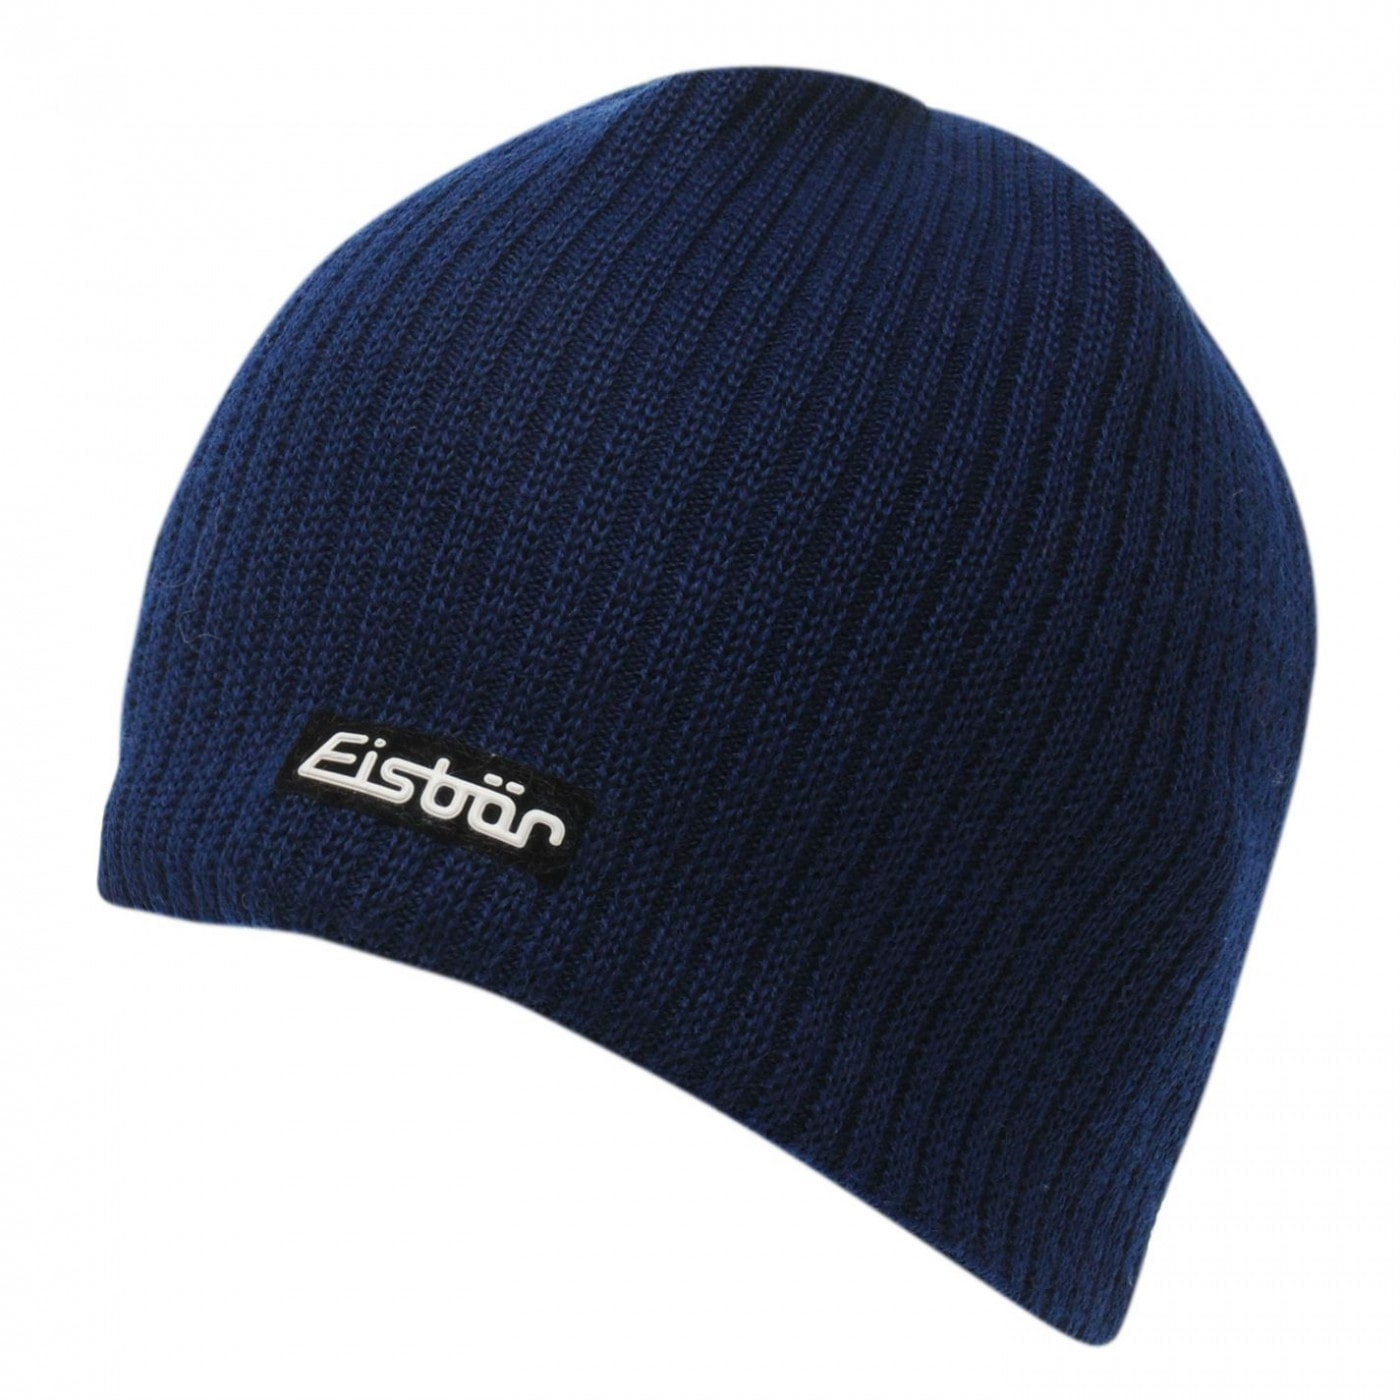 Eisbär Dido Beanie Hat Adults